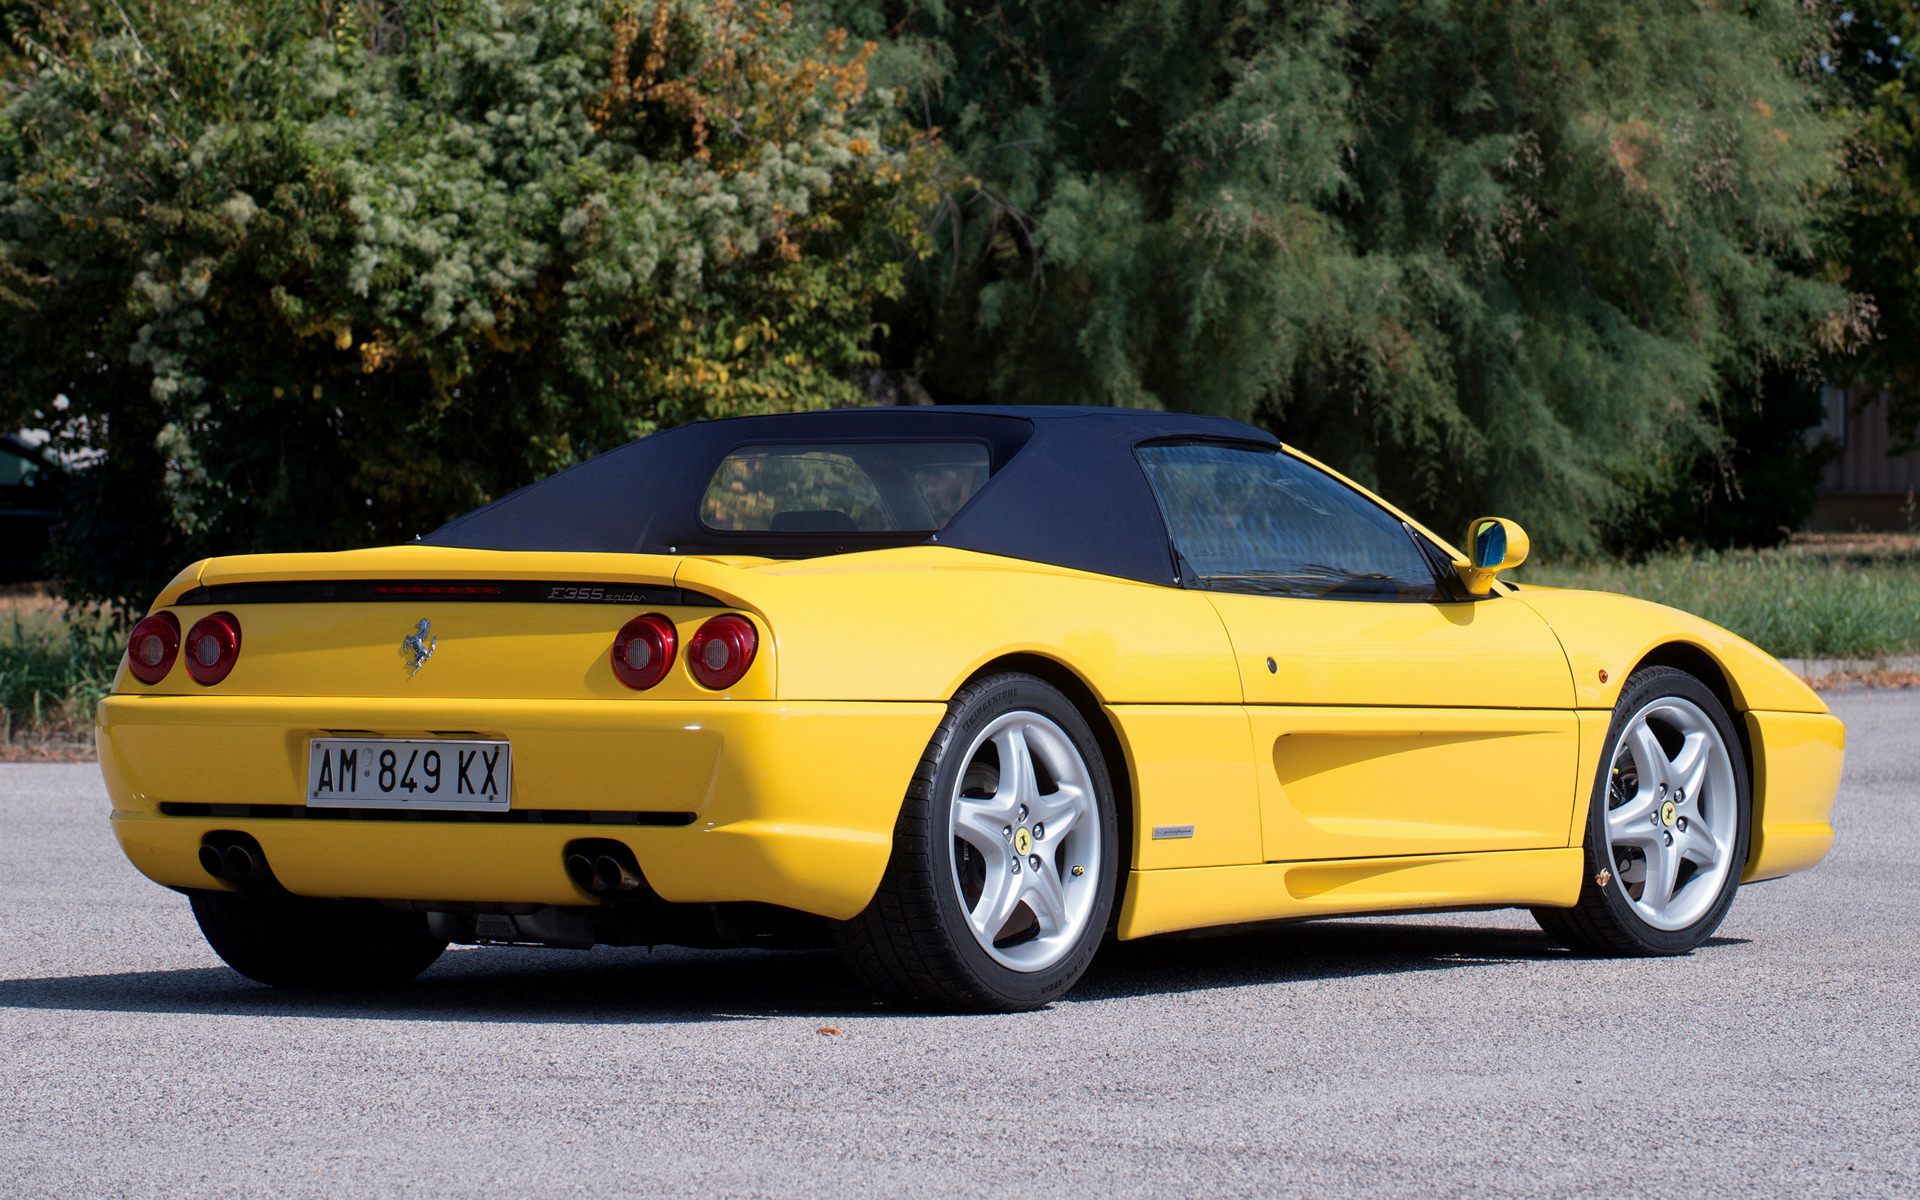 ferrari f355 spider wallpaper - photo #10